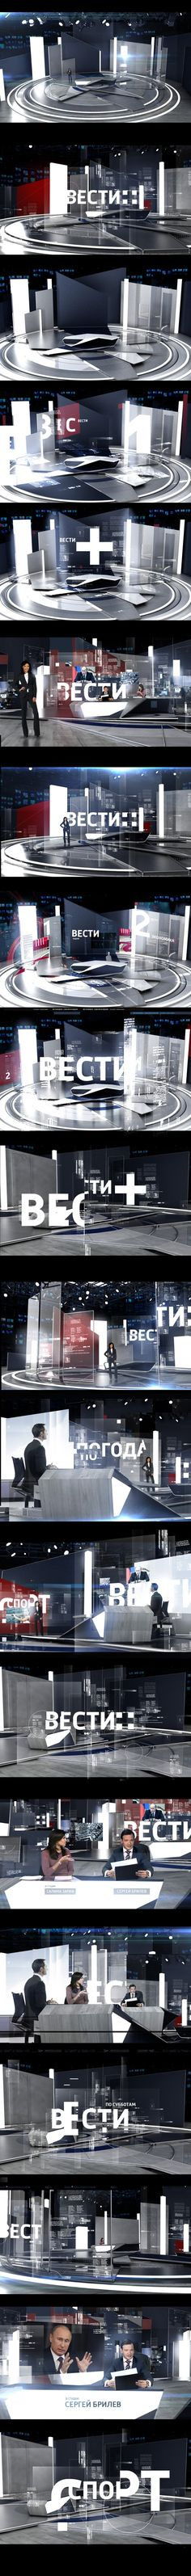 RUSSIA_1 channel NEWS STUDIO by egor antonov, via Behance